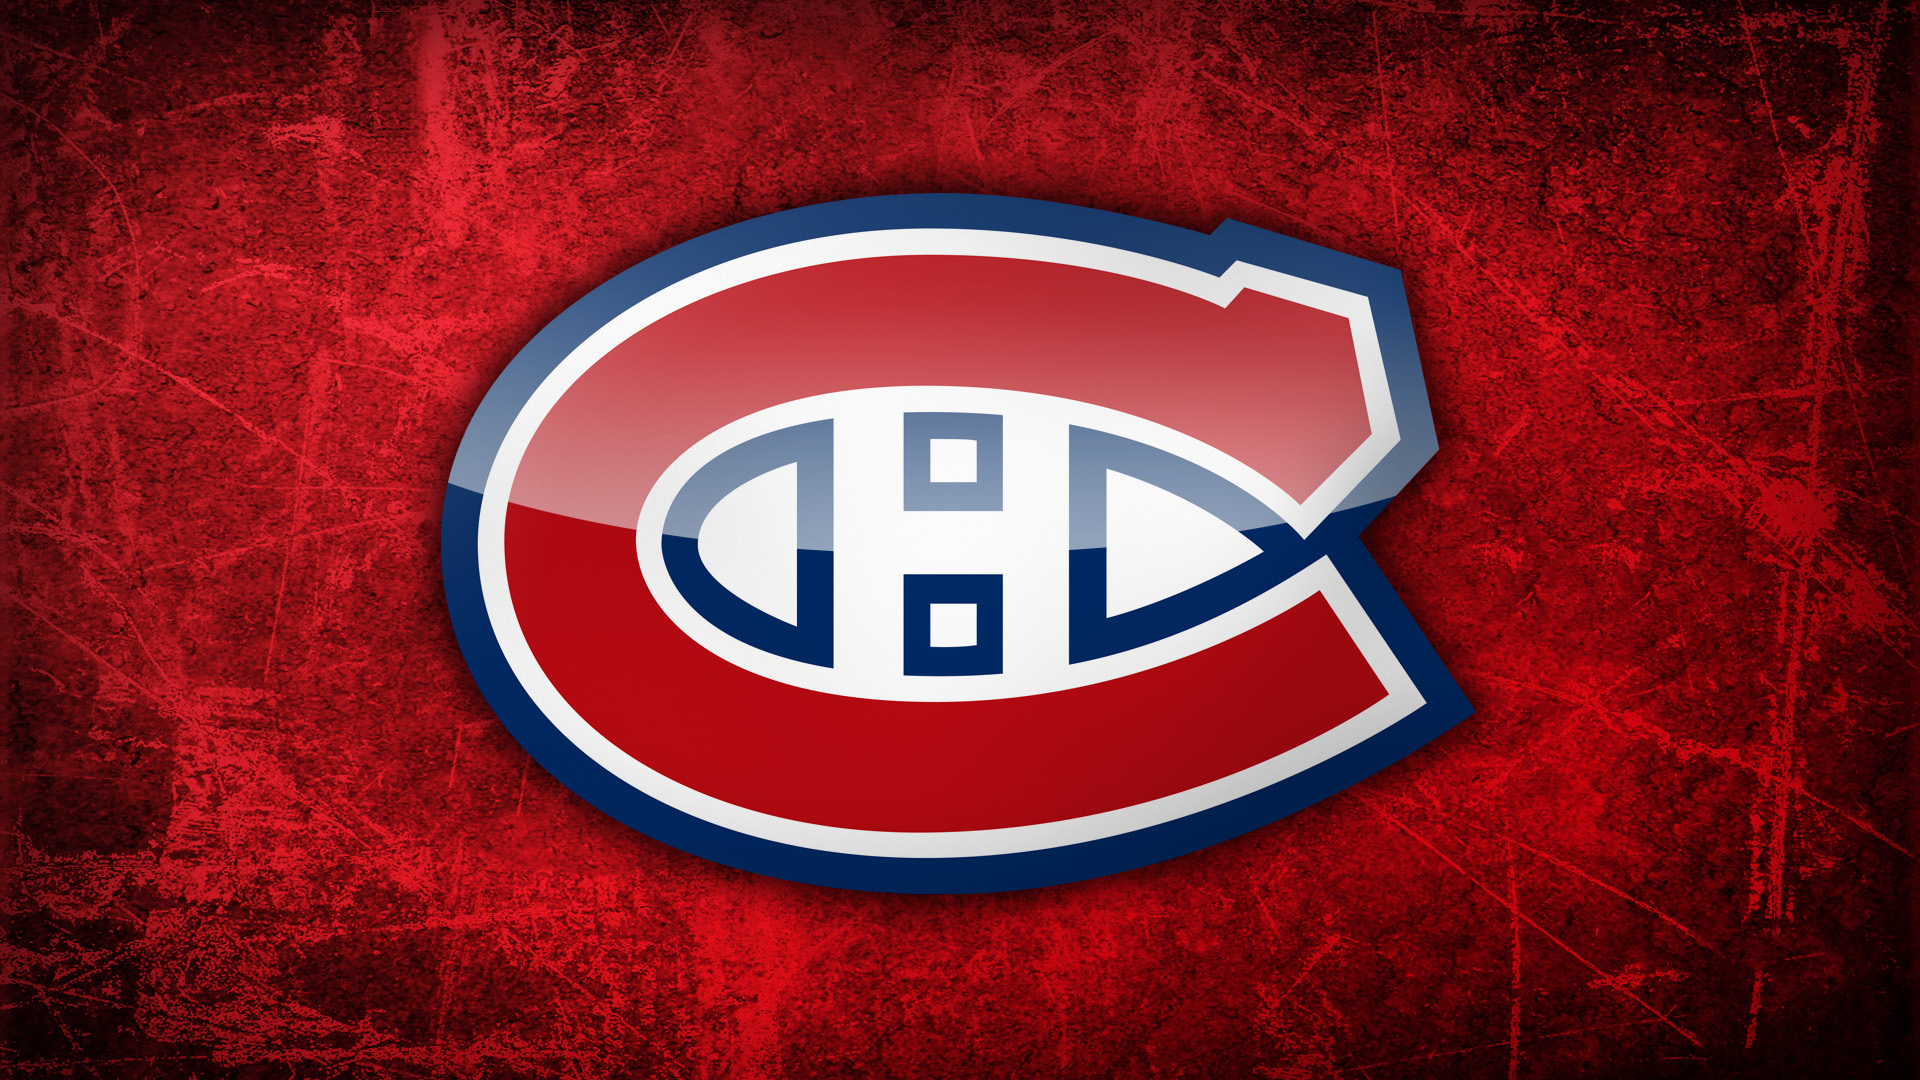 Montreal Canadiens Jersey Wallpaper Re Re 1920x1080